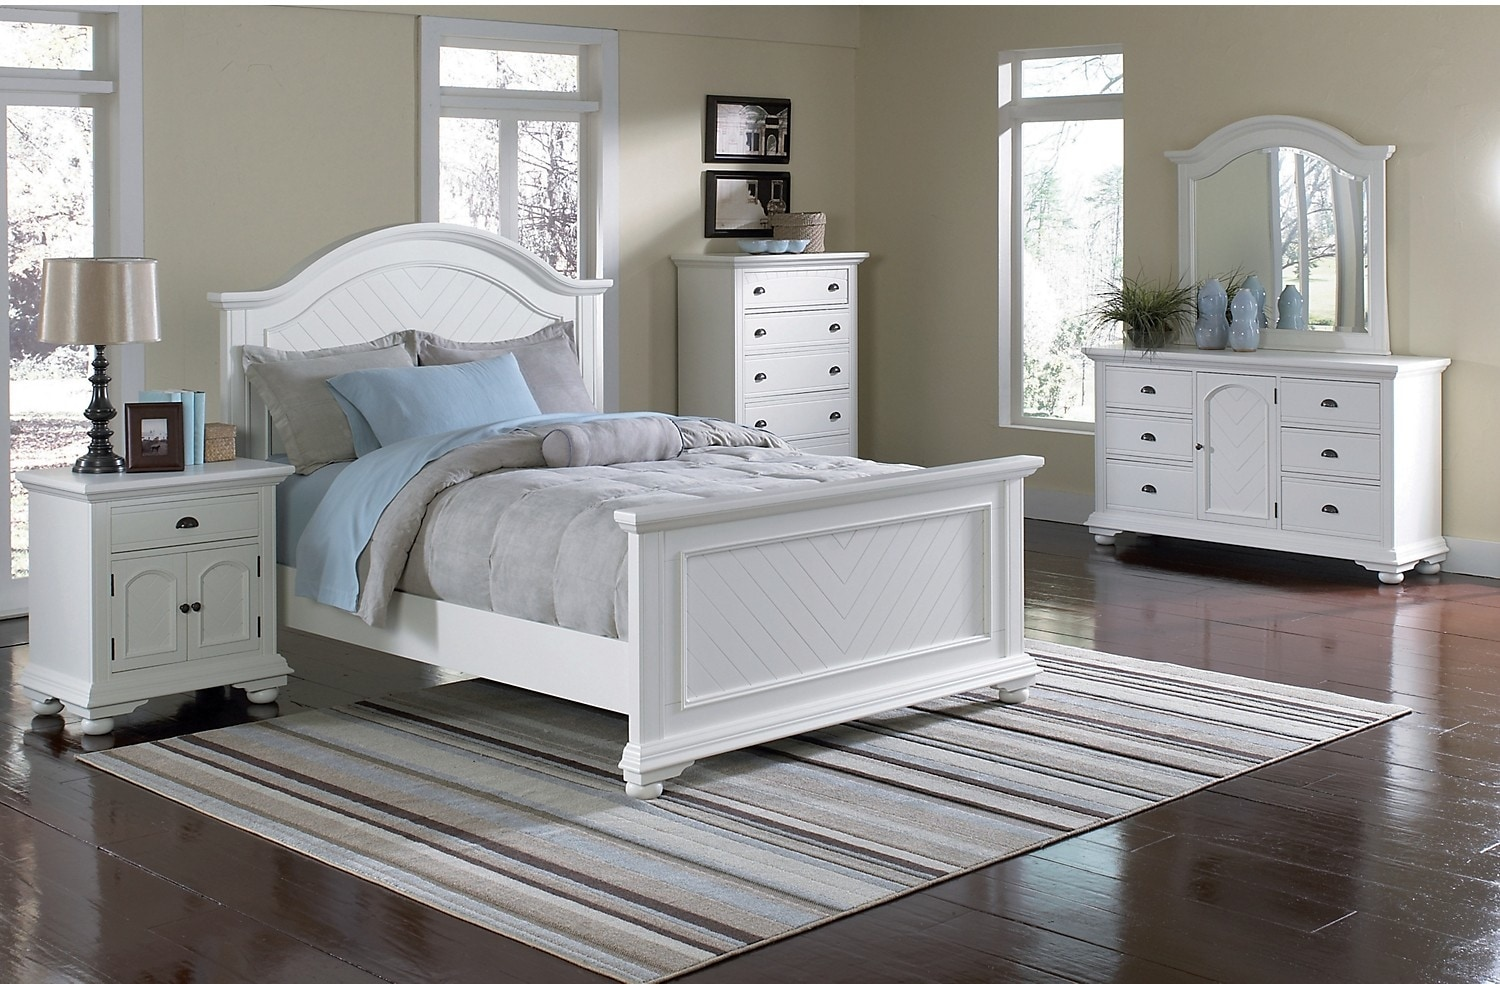 Bedroom Furniture - Casey Off White 8-Piece Full Bedroom Package